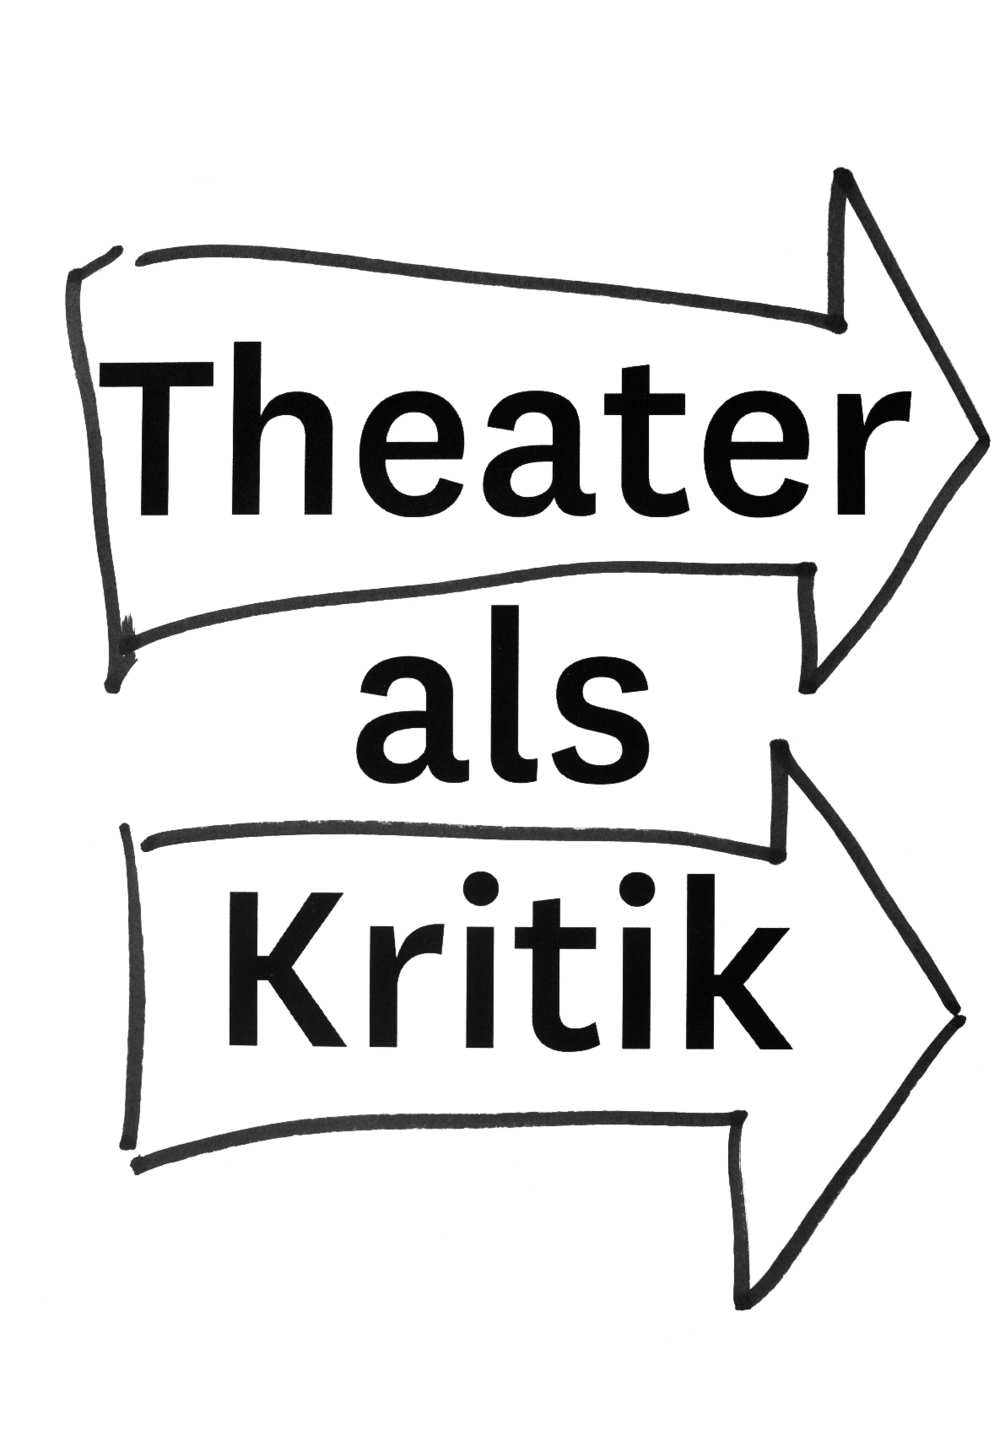 theater-as-critique-slip-16-1005x1435px